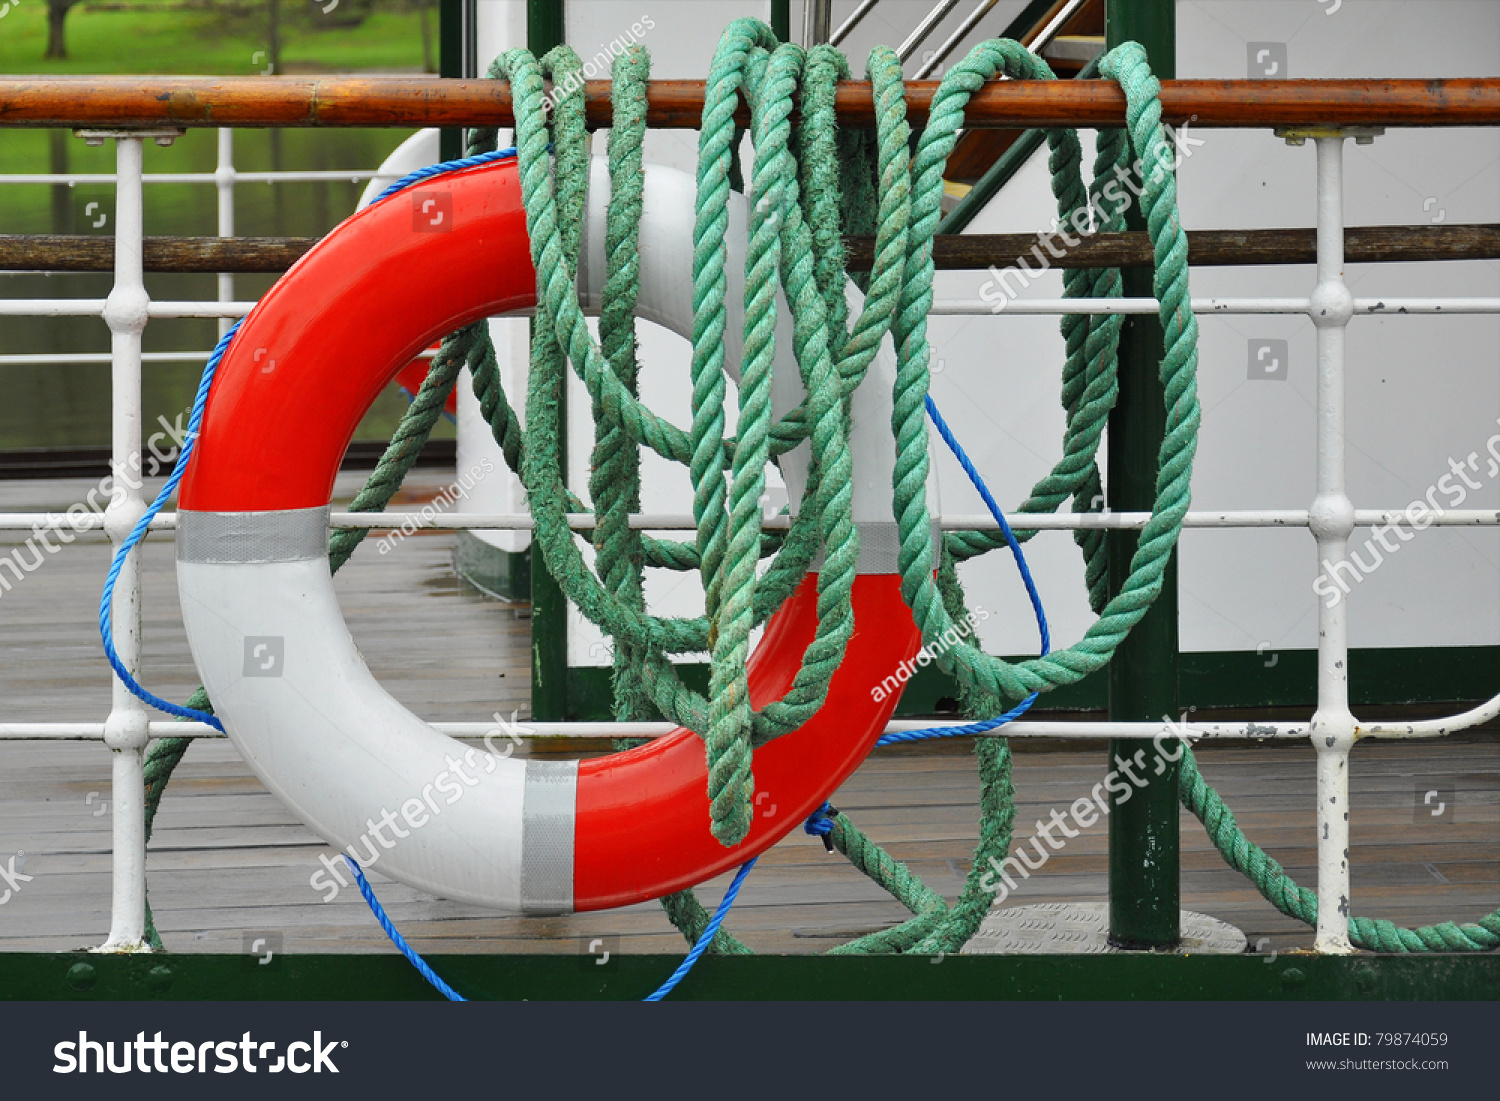 safety measures for passengers on board Facts about cruise ship safety all cruise ships must be designed and operated in compliance with strict requirements of international law and follow an extraordinary number of established rules and regulations to protect everyone on board.